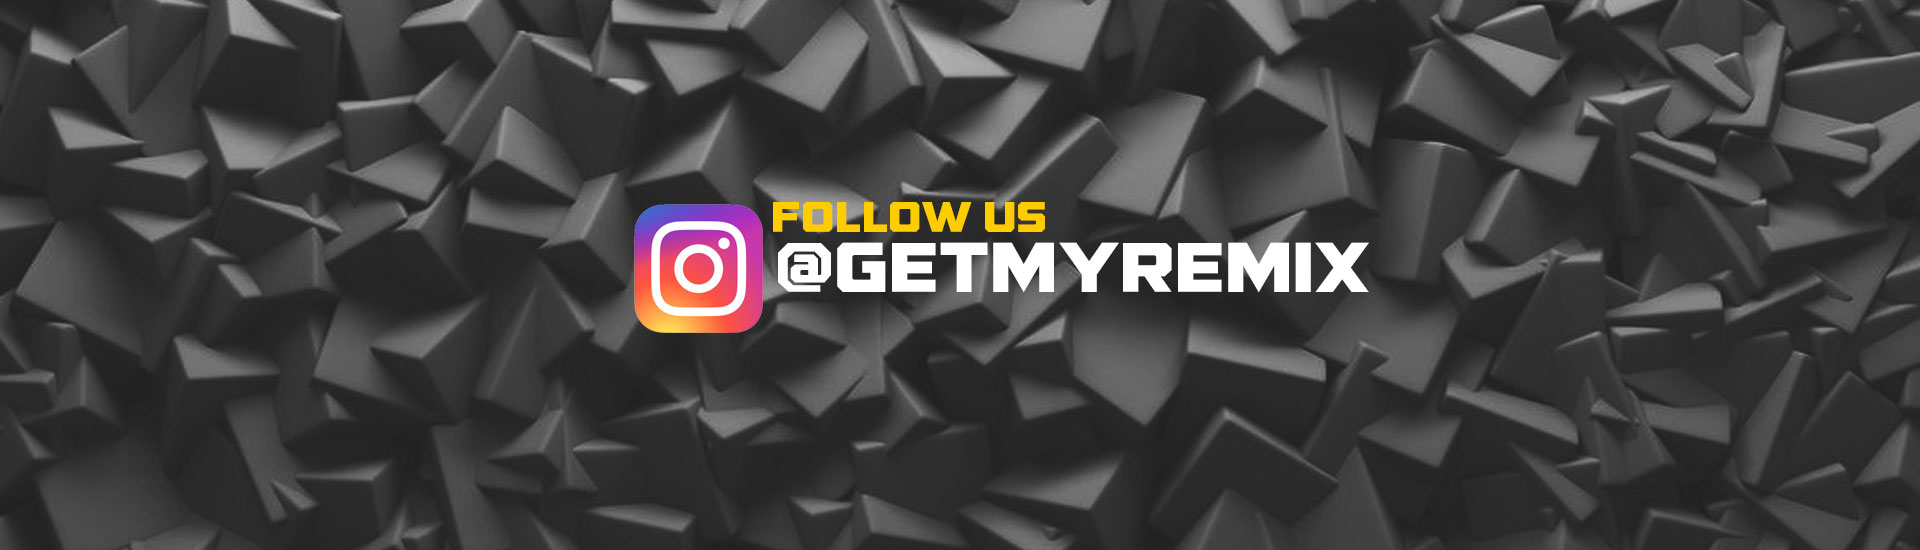 FOLLOW-US-getmyremix.jpg